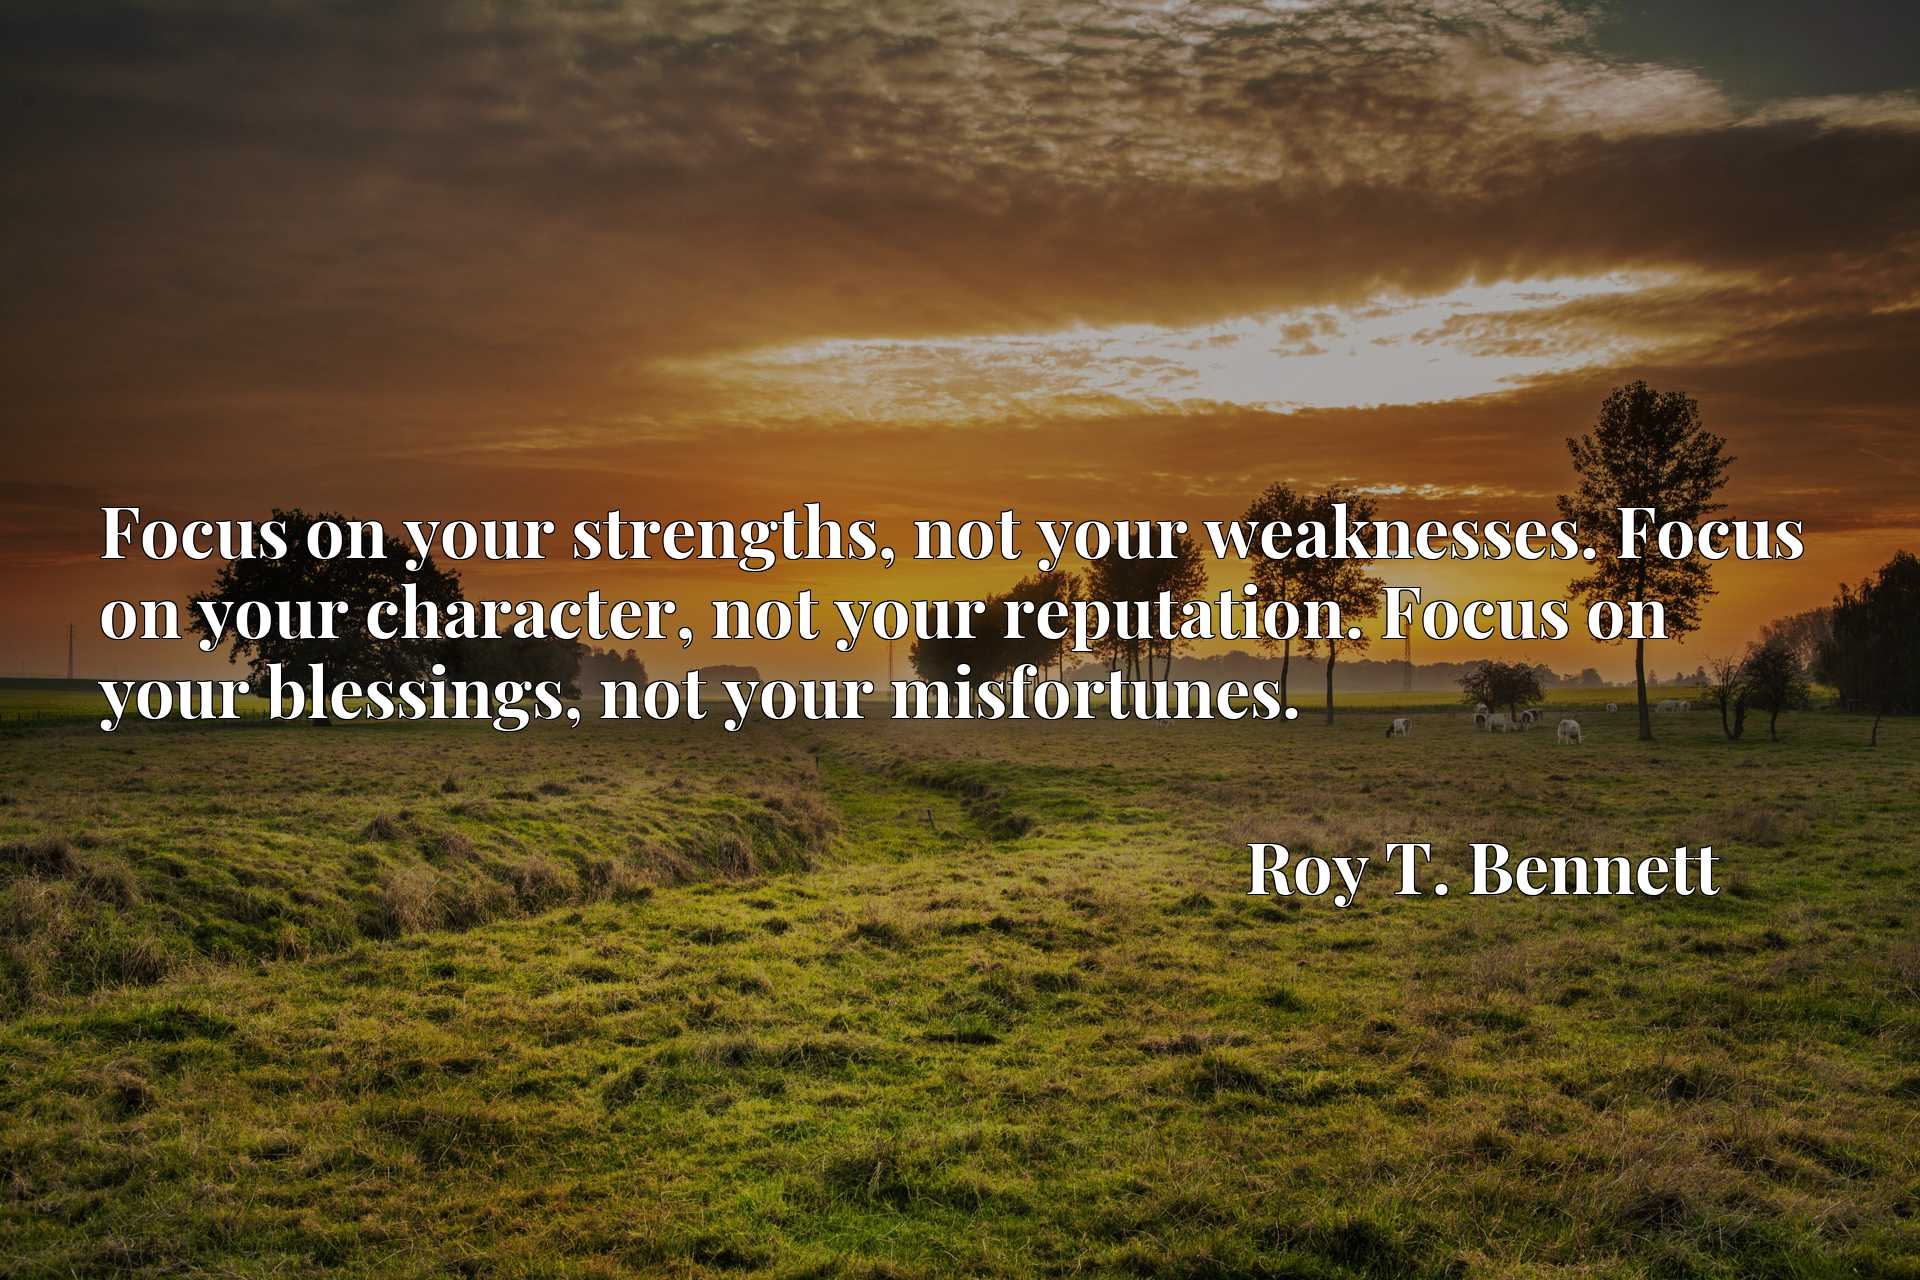 Focus on your strengths, not your weaknesses. Focus on your character, not your reputation. Focus on your blessings, not your misfortunes.